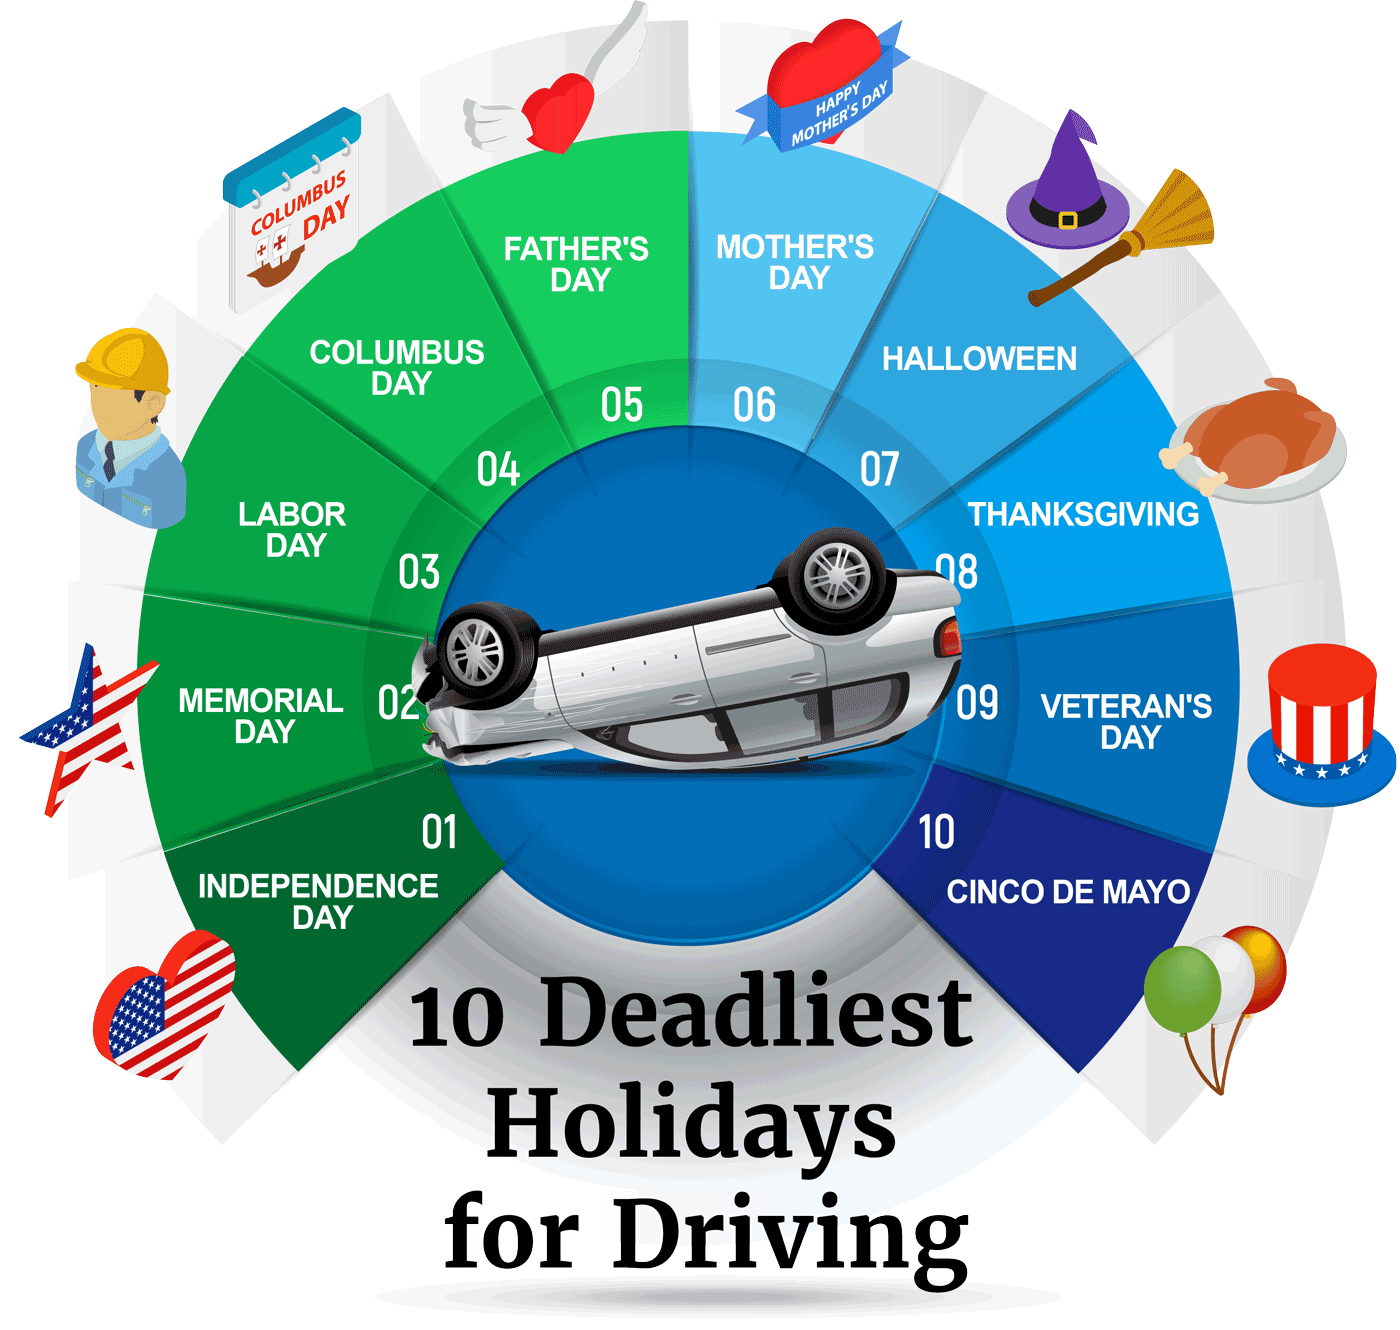 10 deadliest holidays for driving in the U.S.